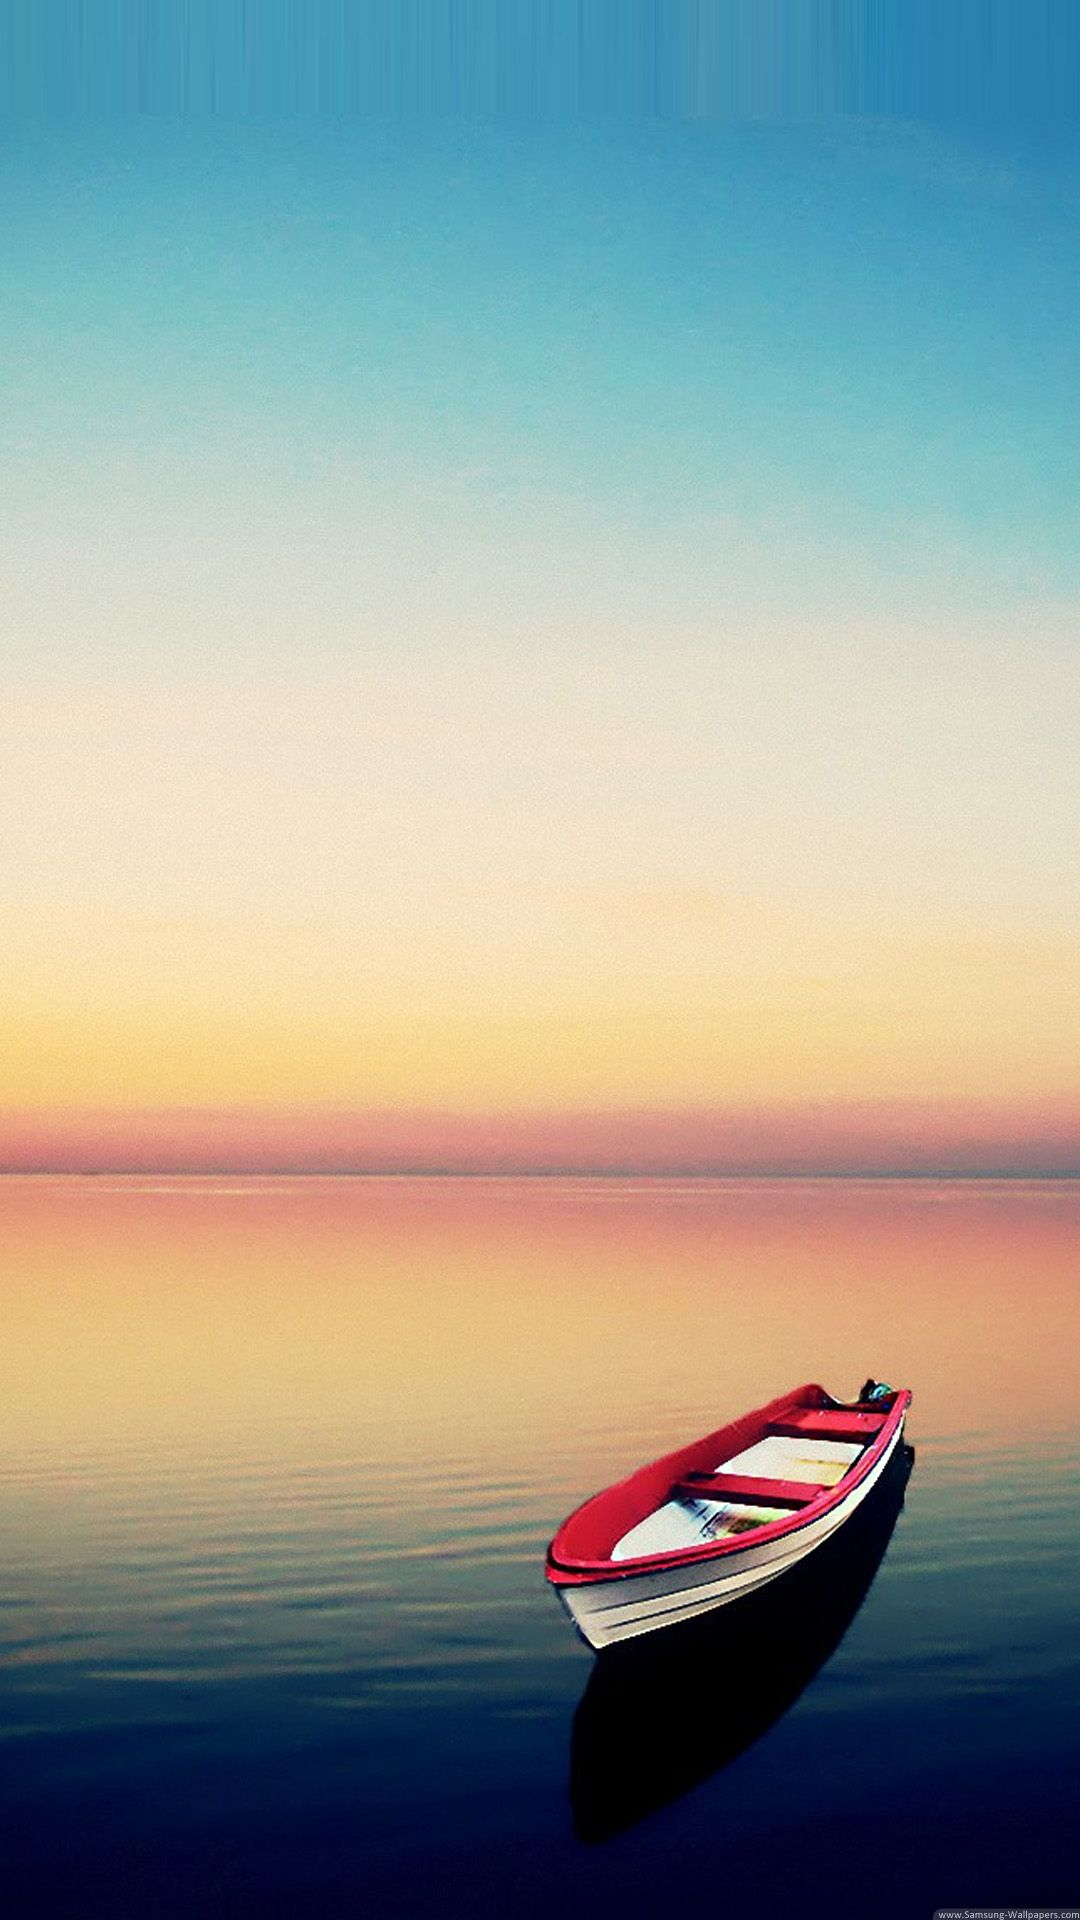 Fantasy Colored Boat Samsung Galaxy S4 1080x1920 Wallpapers_Samsung Wallpapers | Phone ...